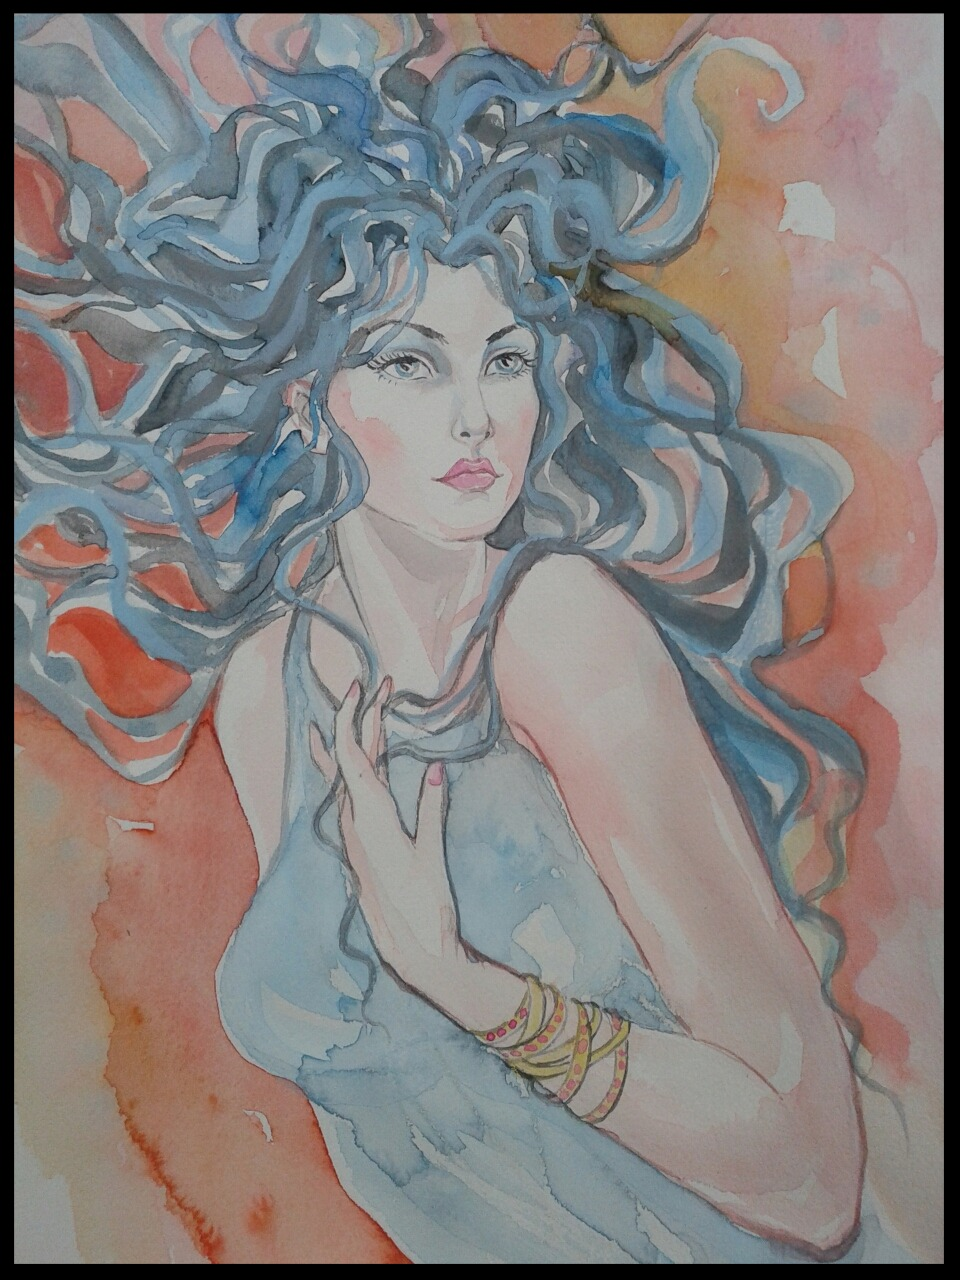 EDITBAKK ORIGINAL WATERCOLOR NICOLE 22 x 15 $2800